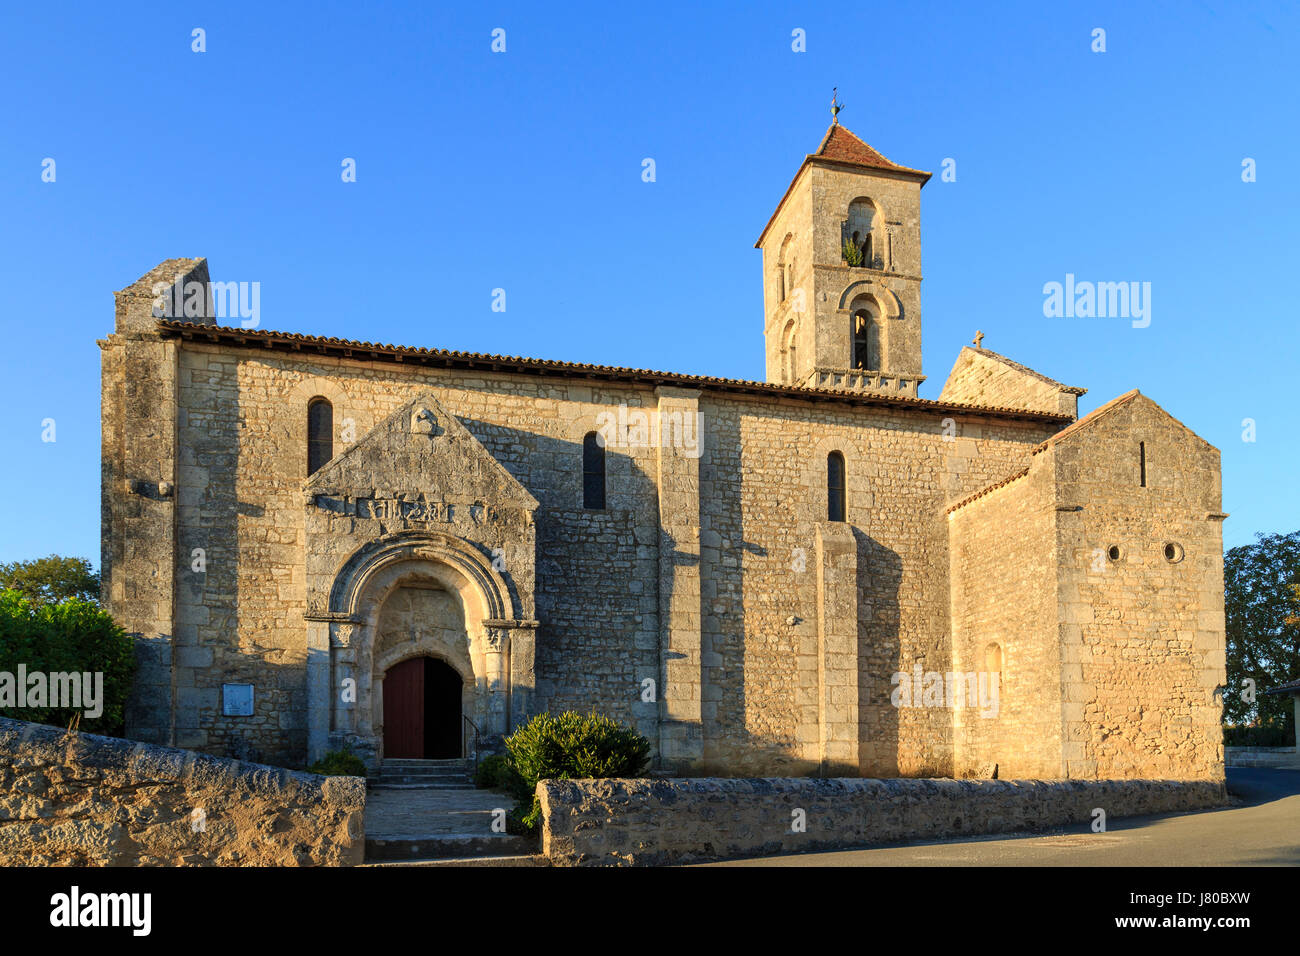 France, Gironde, Montagne, hamlet de Saint Georges de Montagne, Church - Stock Image